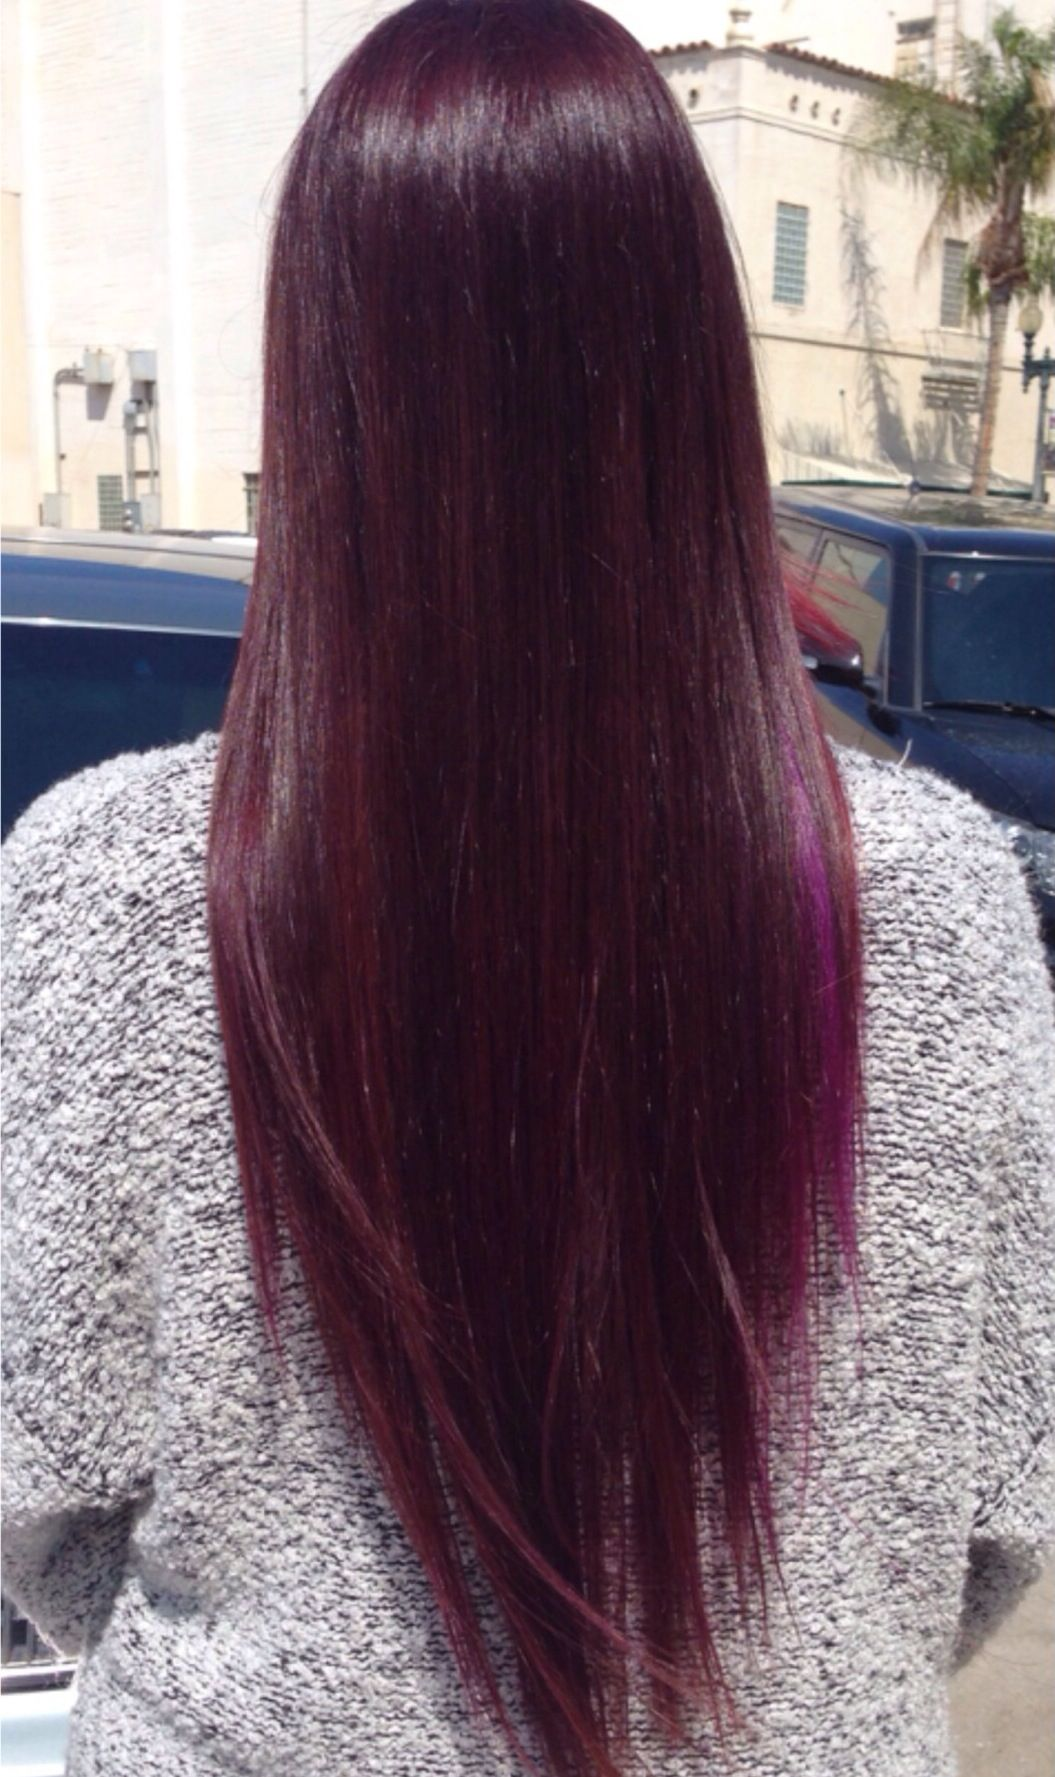 Dark Violet Hair Using Only Joico S 4fv Wild Orchid